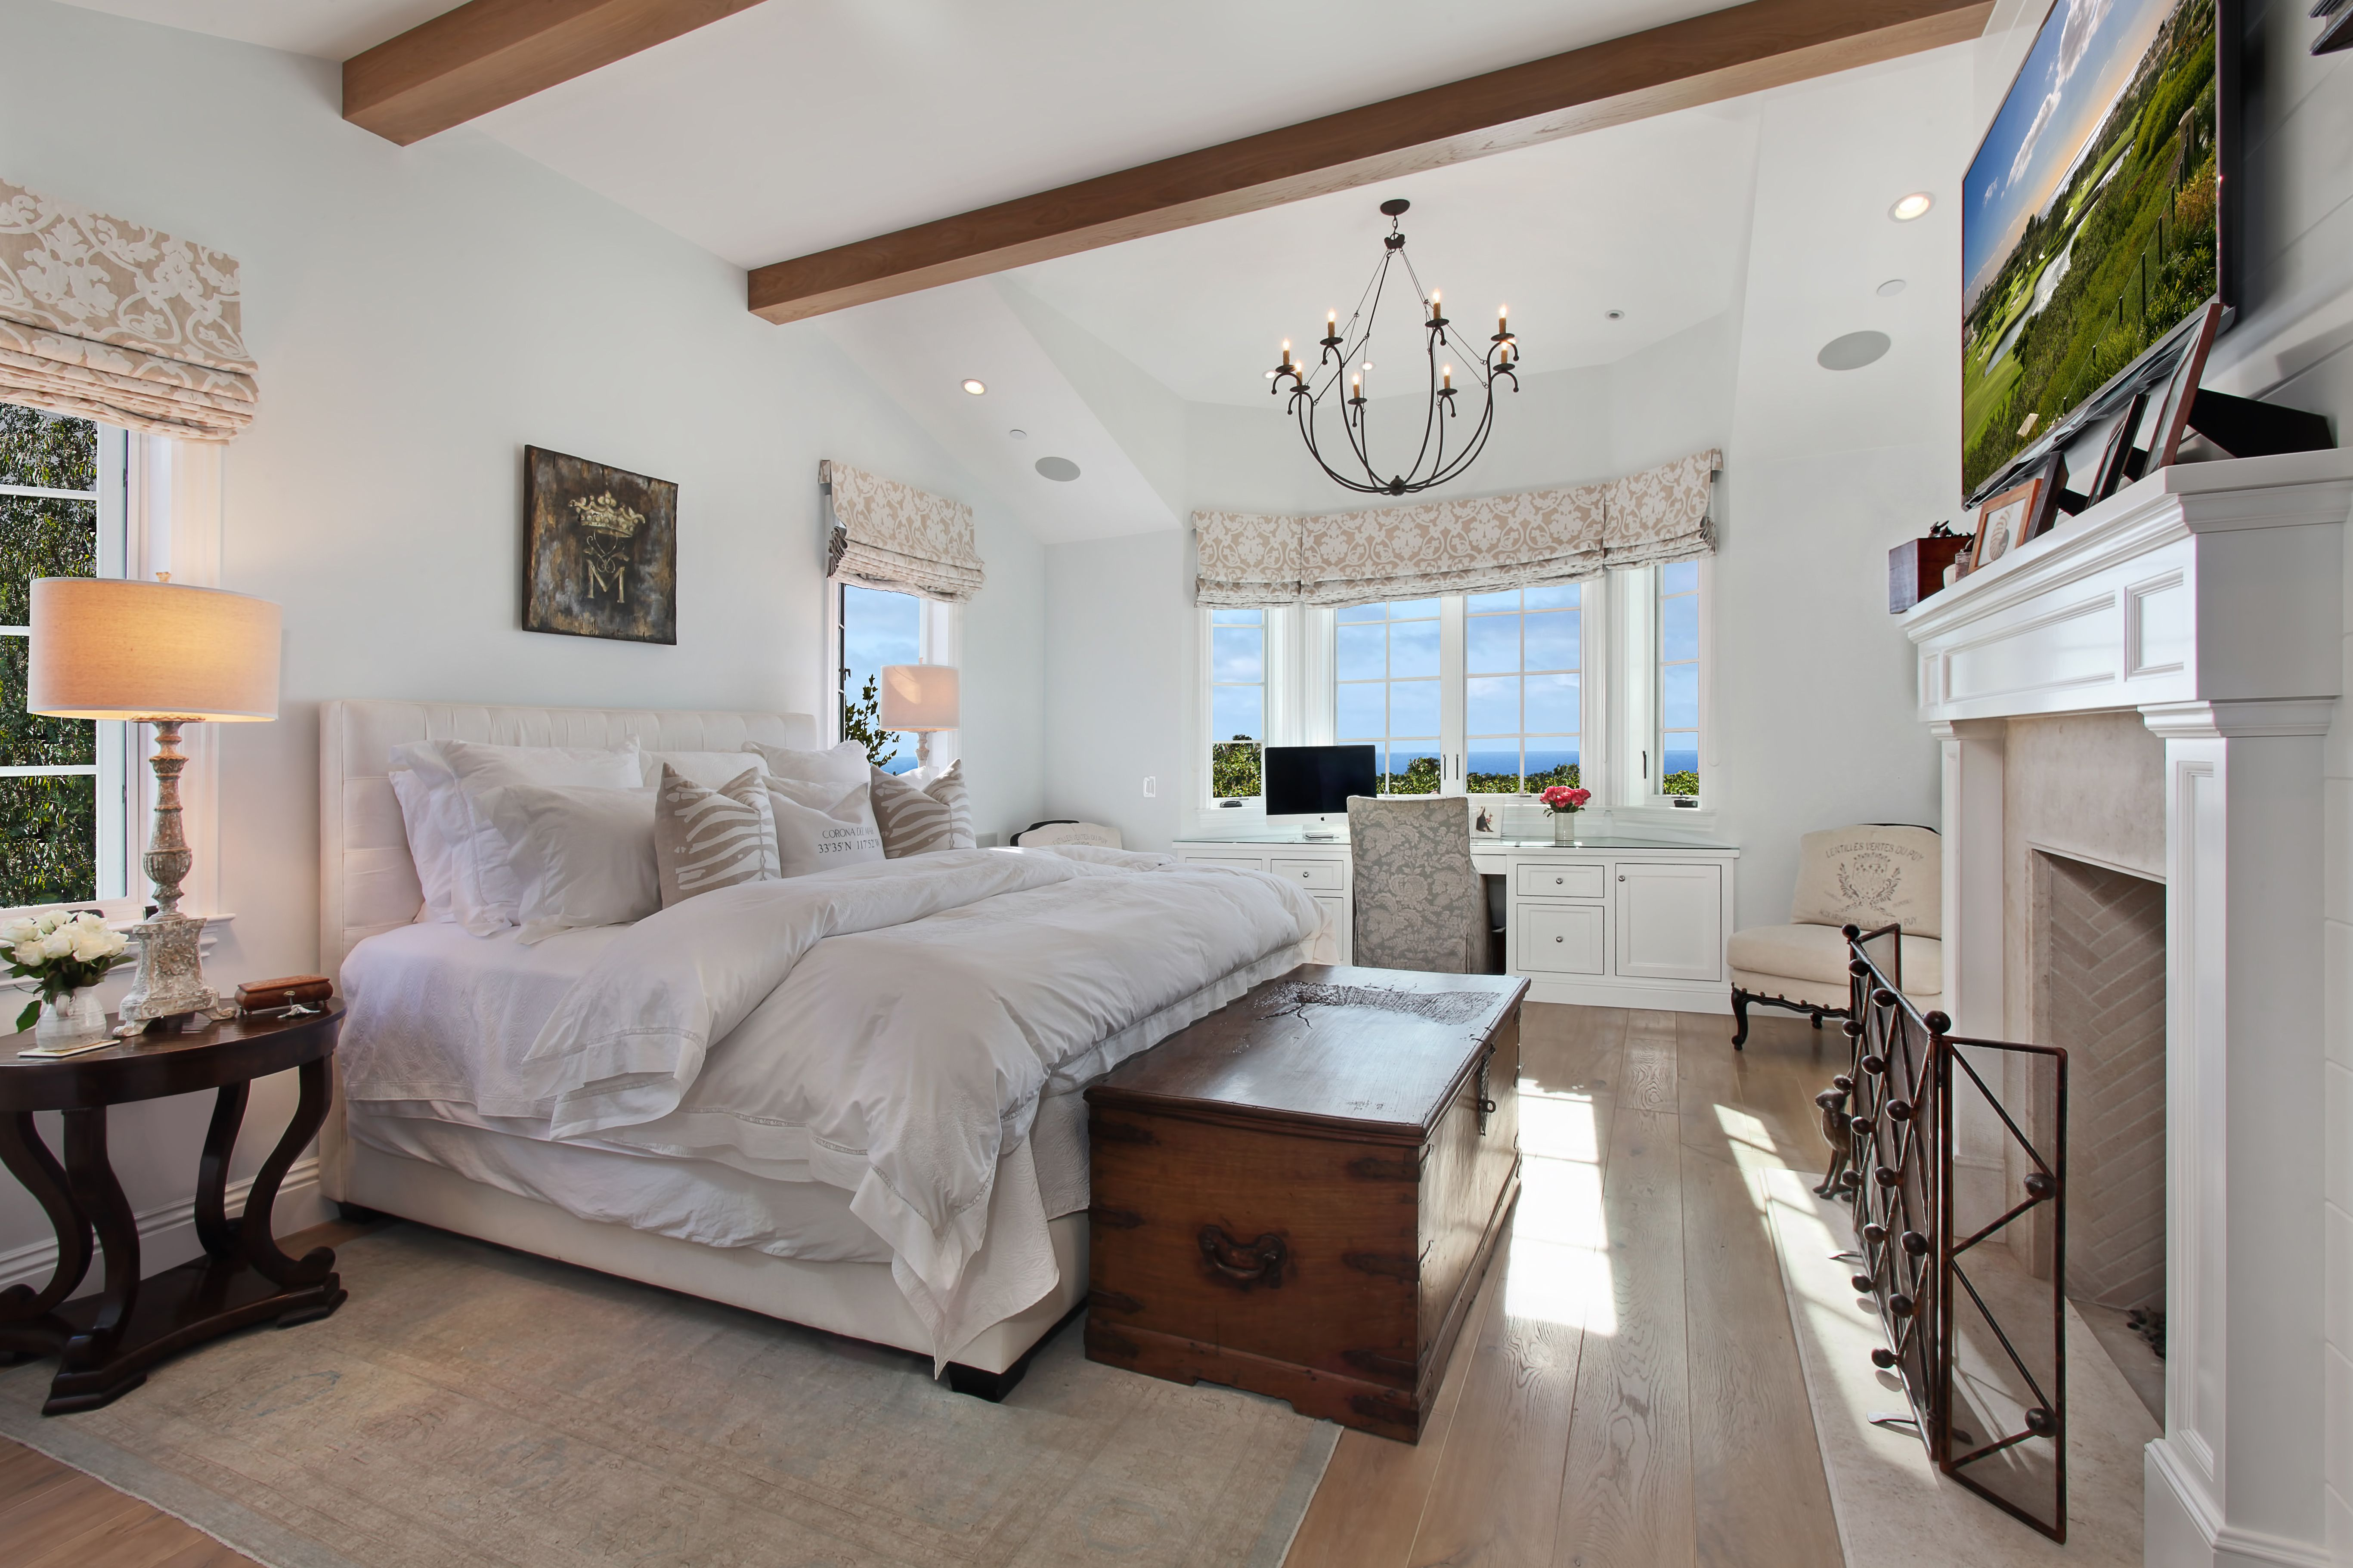 The Oak Floors Beamed Ceiling And Bay Window With An Ocean View Make This One Unforgettable Ma Condo Living Room Bedroom Window Design Hotel Style Bedroom